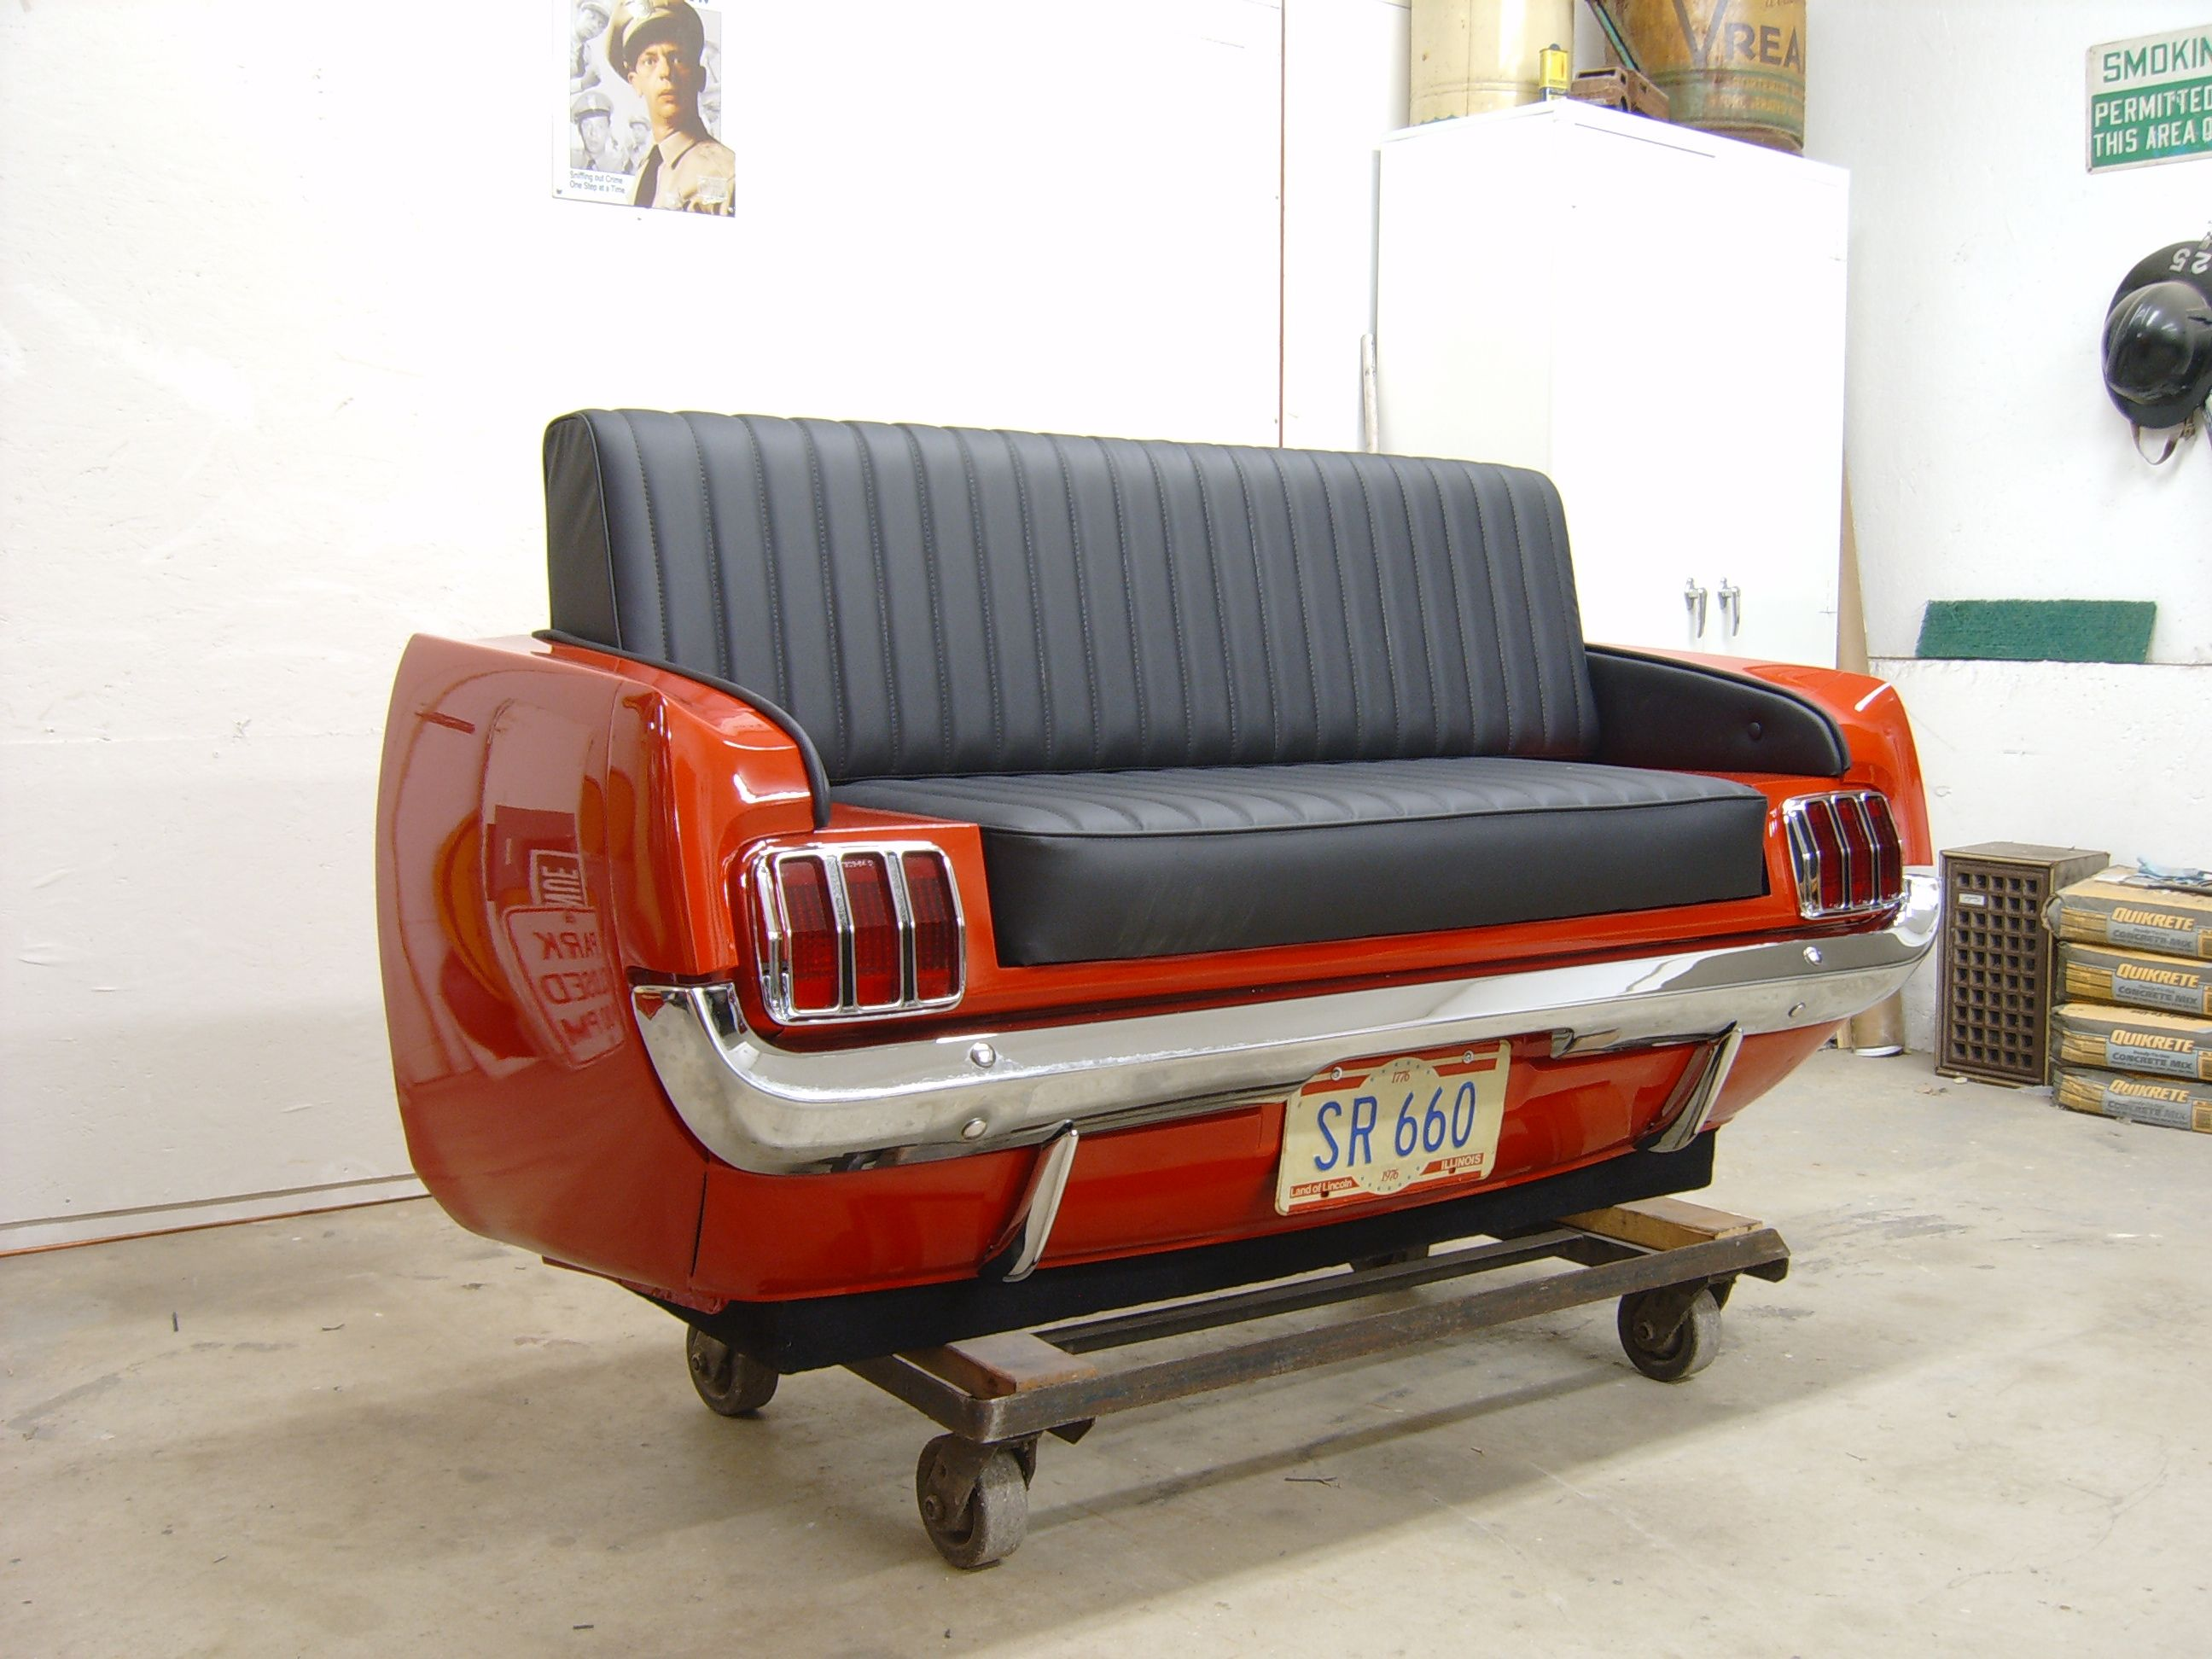 Auto Sofa 65 Ford Mustang Couch They Start At 3000 Bucks Ahhh